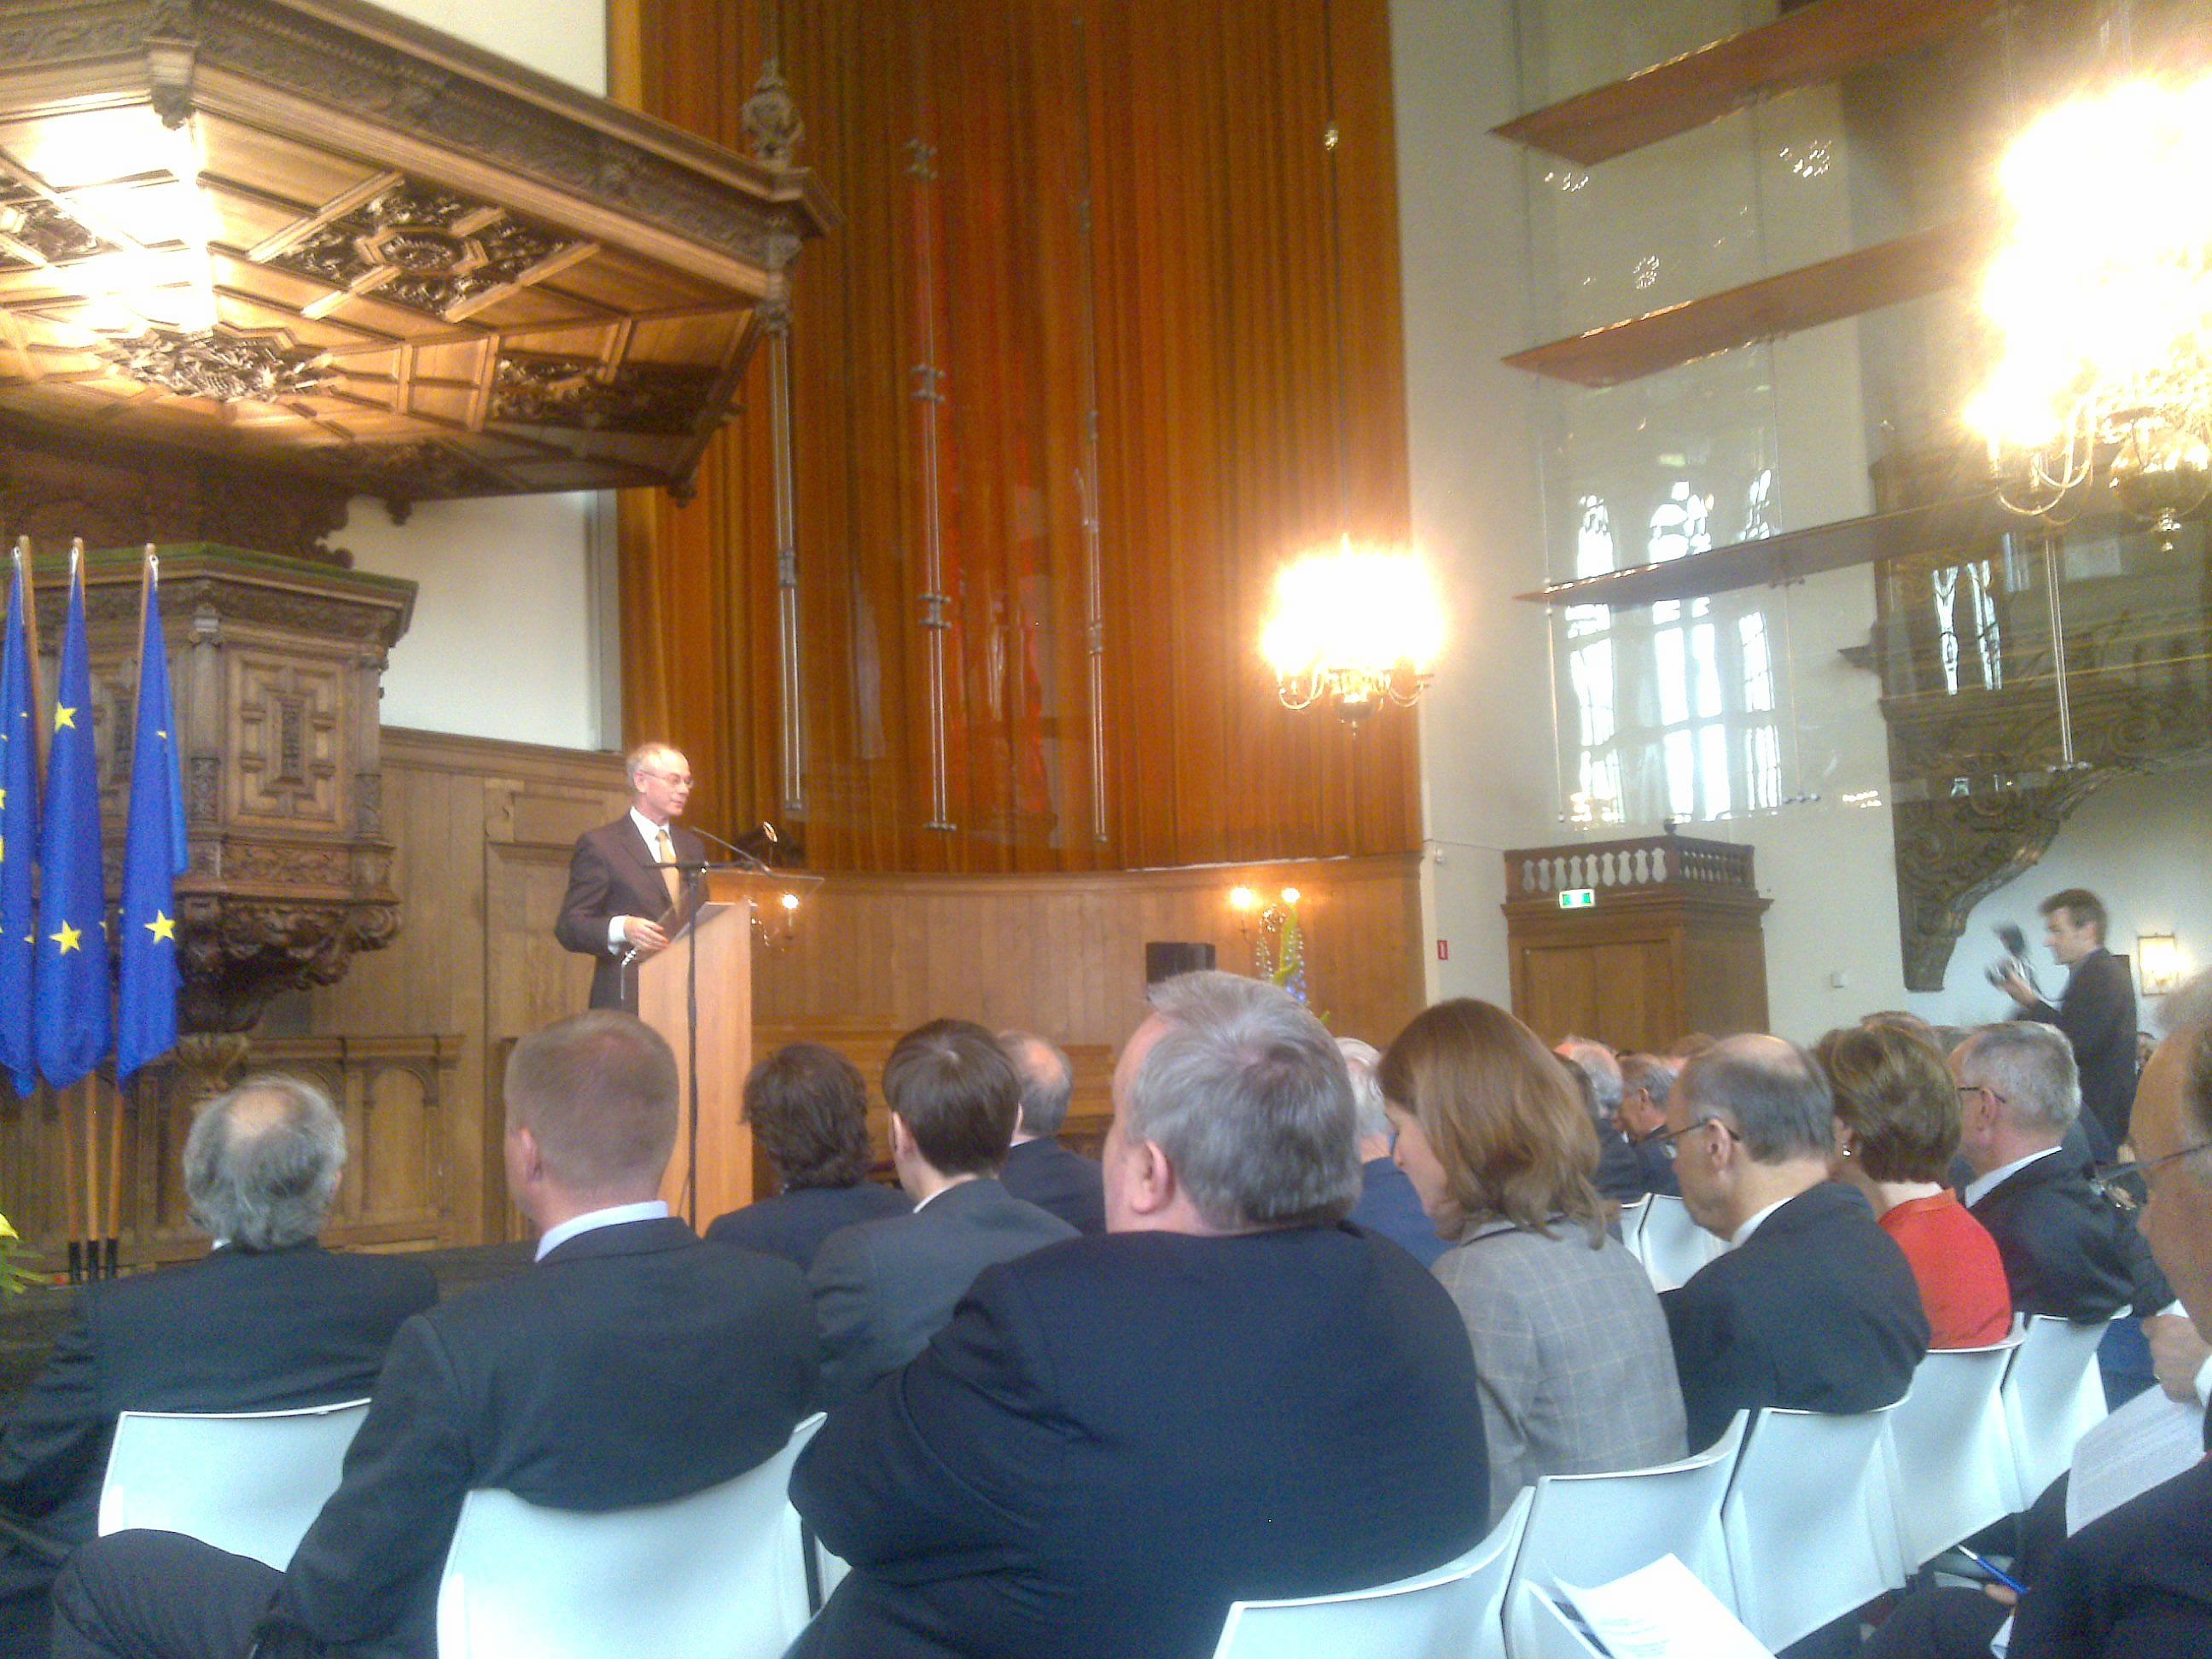 2010: Van Rompuy lectured about the state and future of EUROPE